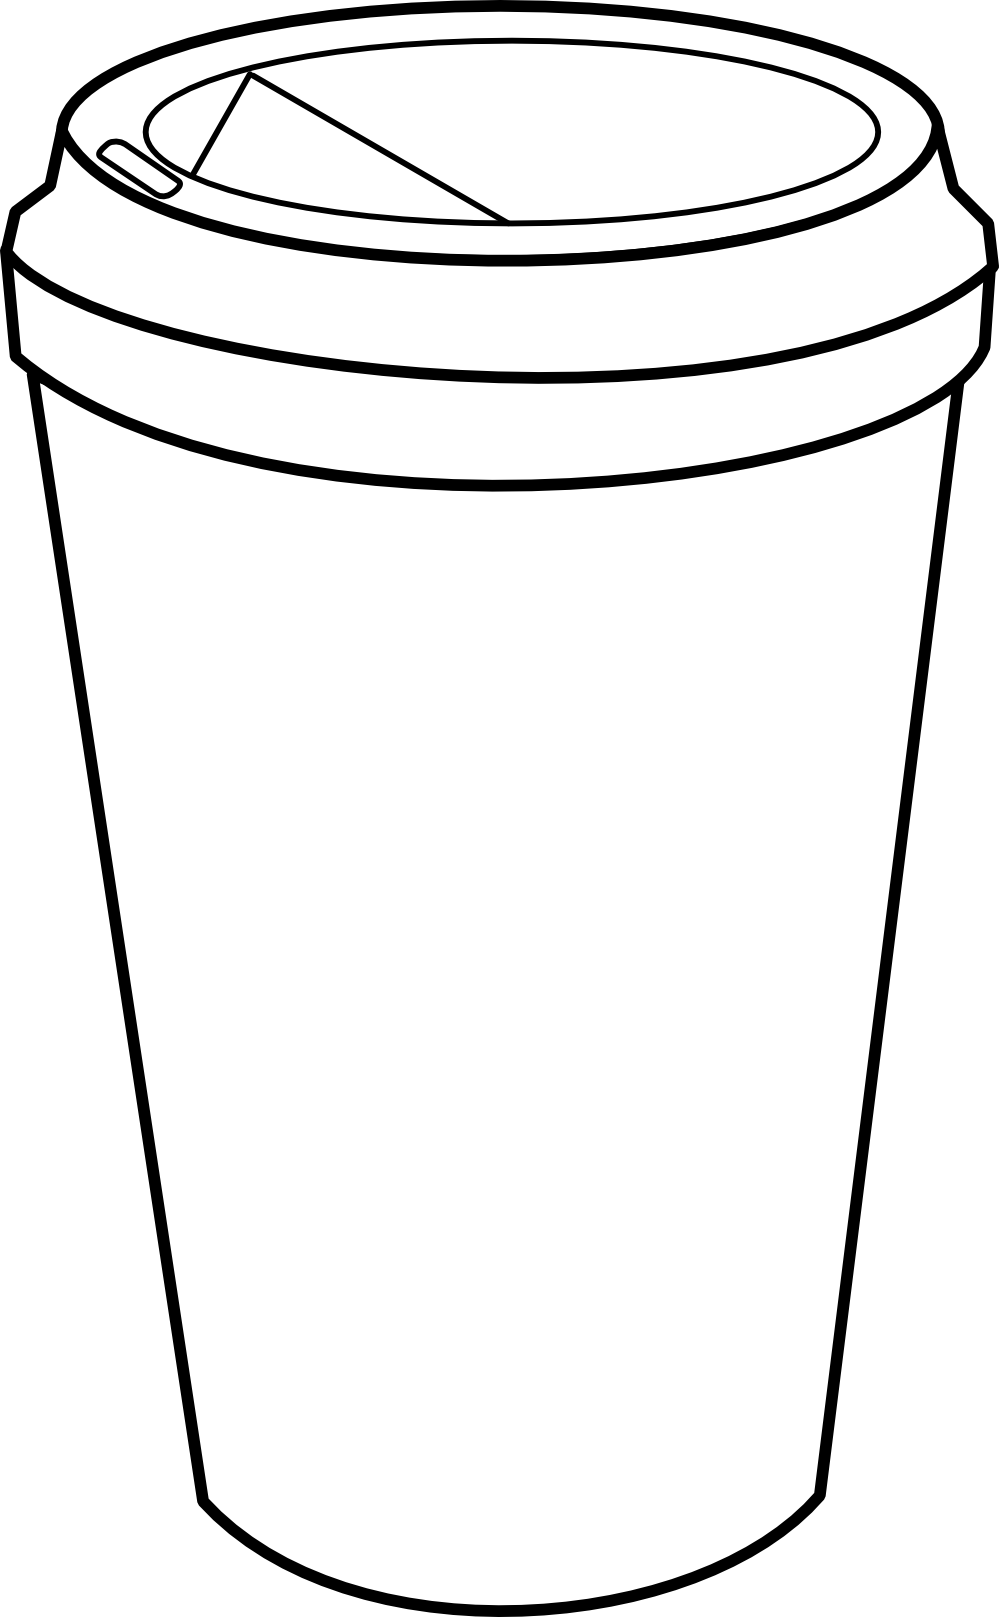 Clip art coffee viewing. Latte clipart tumbler starbucks